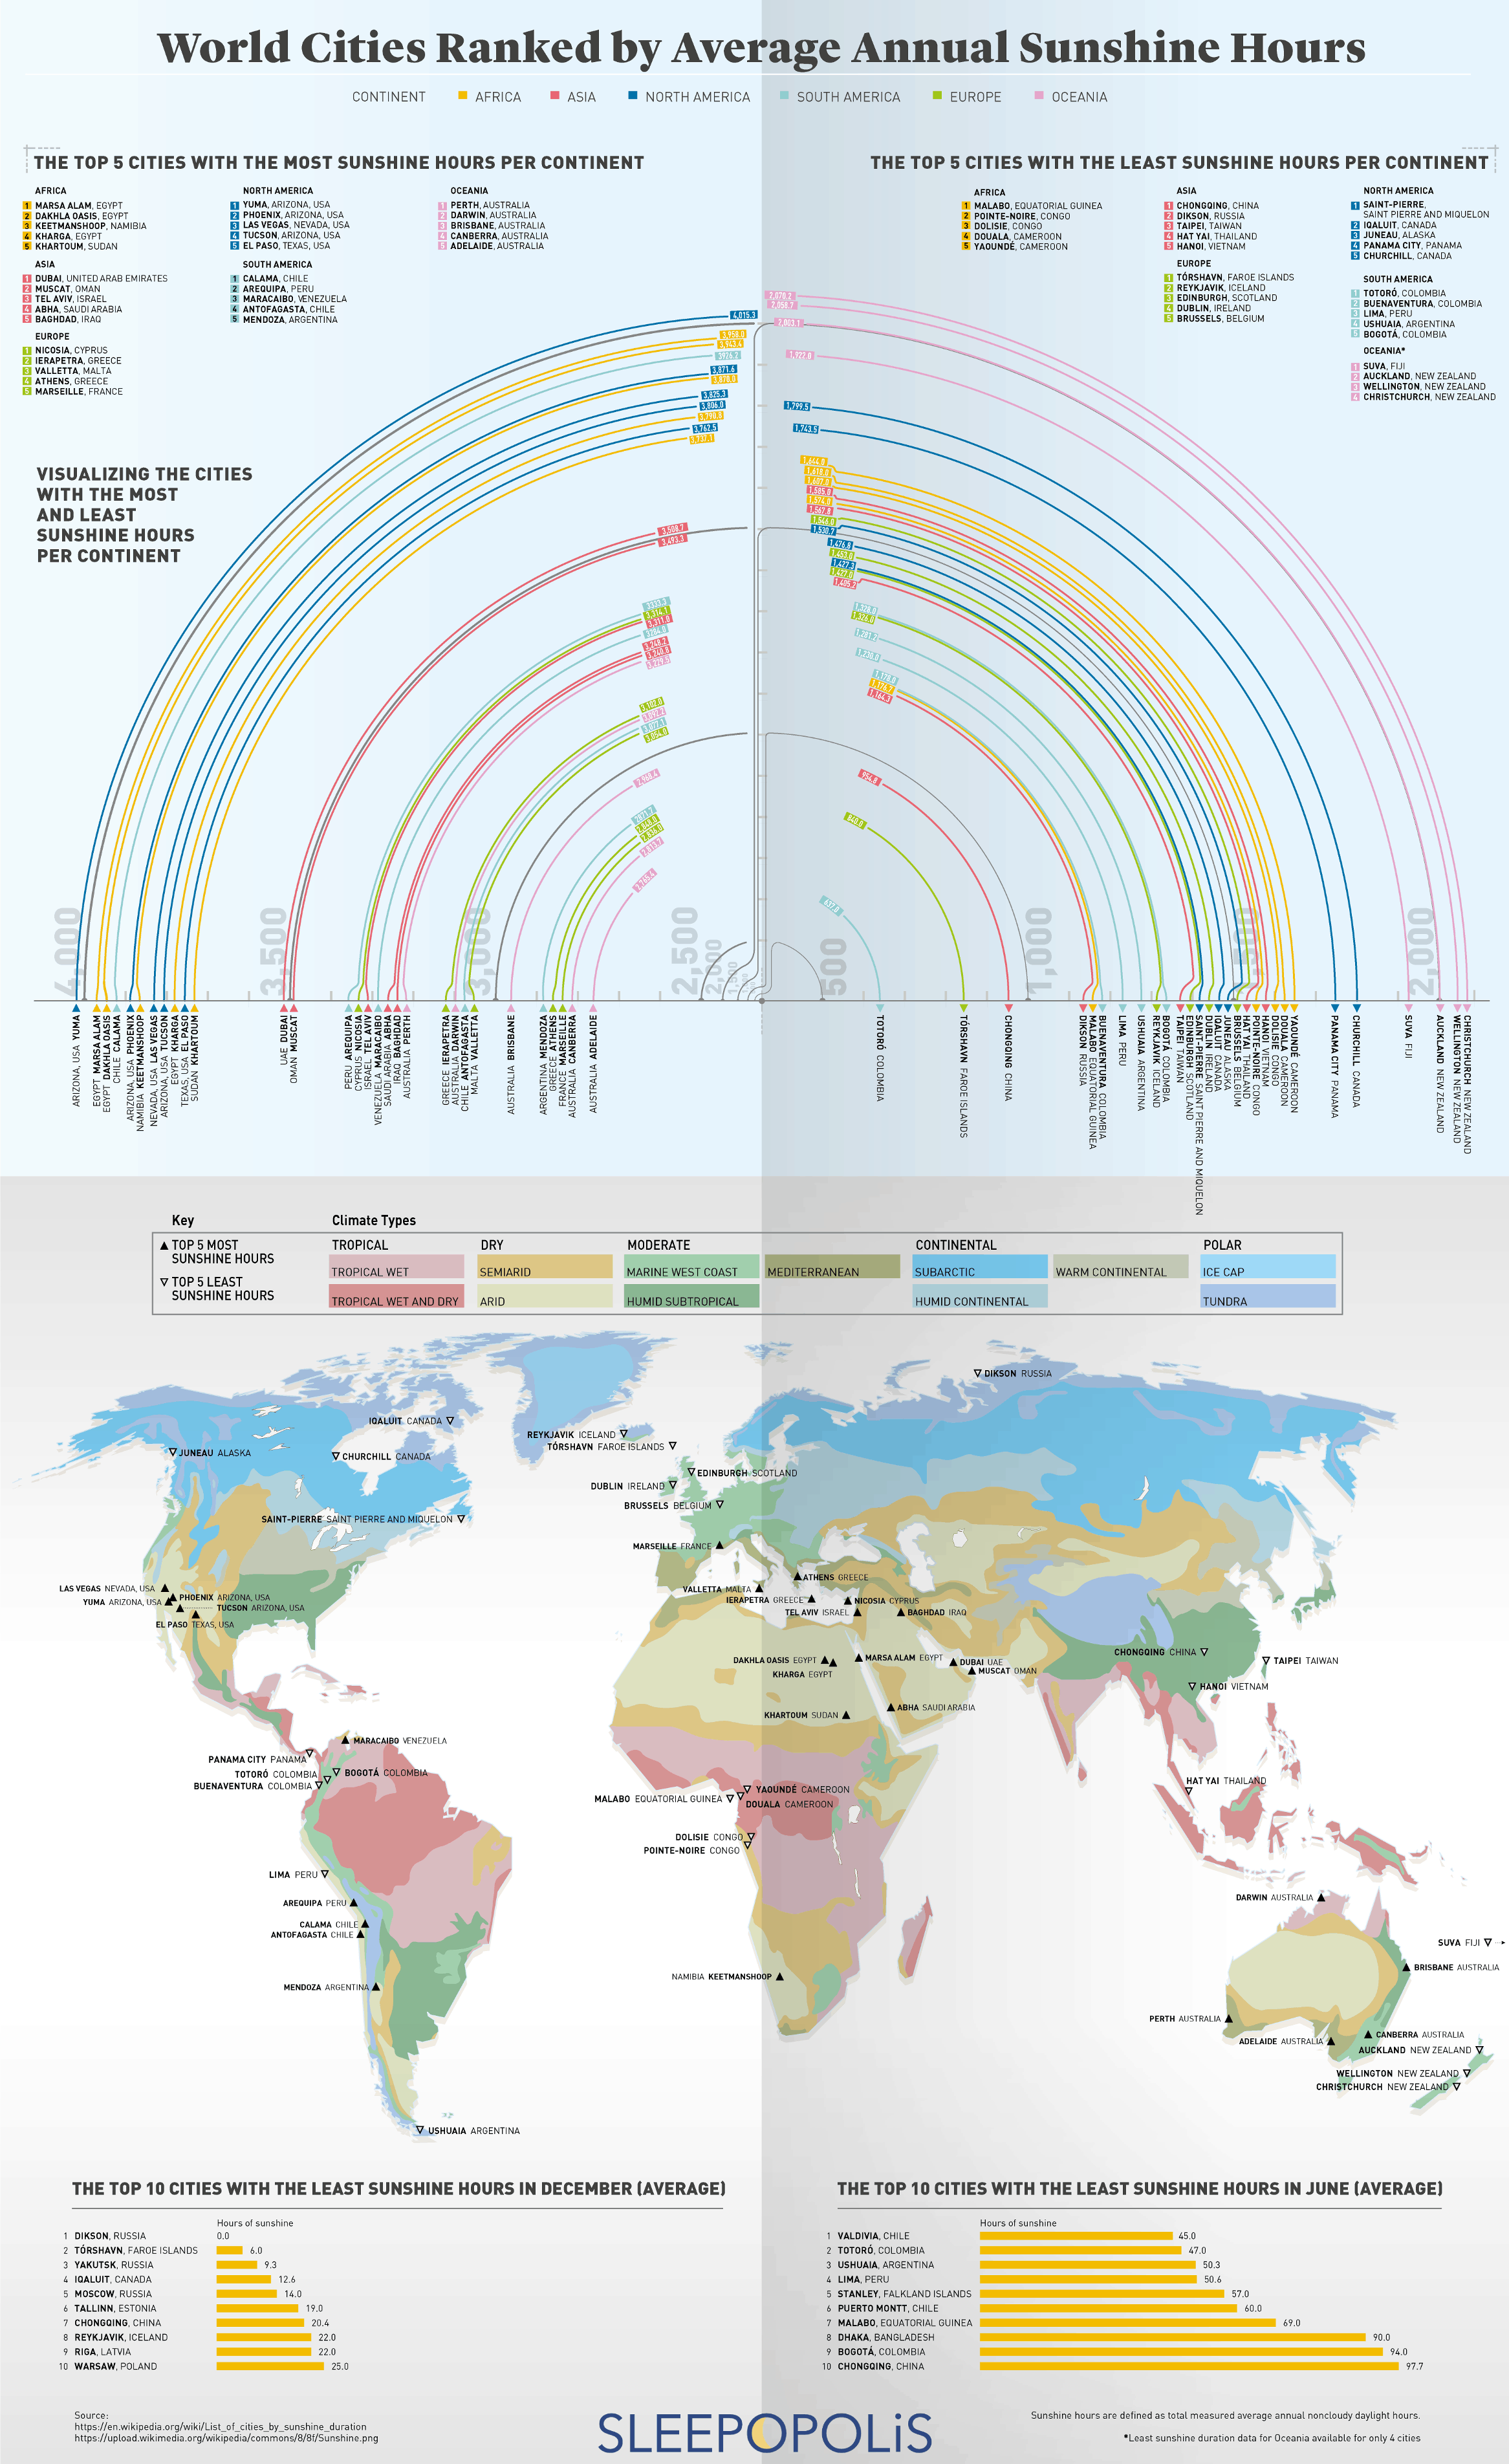 World Cities Ranked by Average Annual Sunshine Hours - Infographic